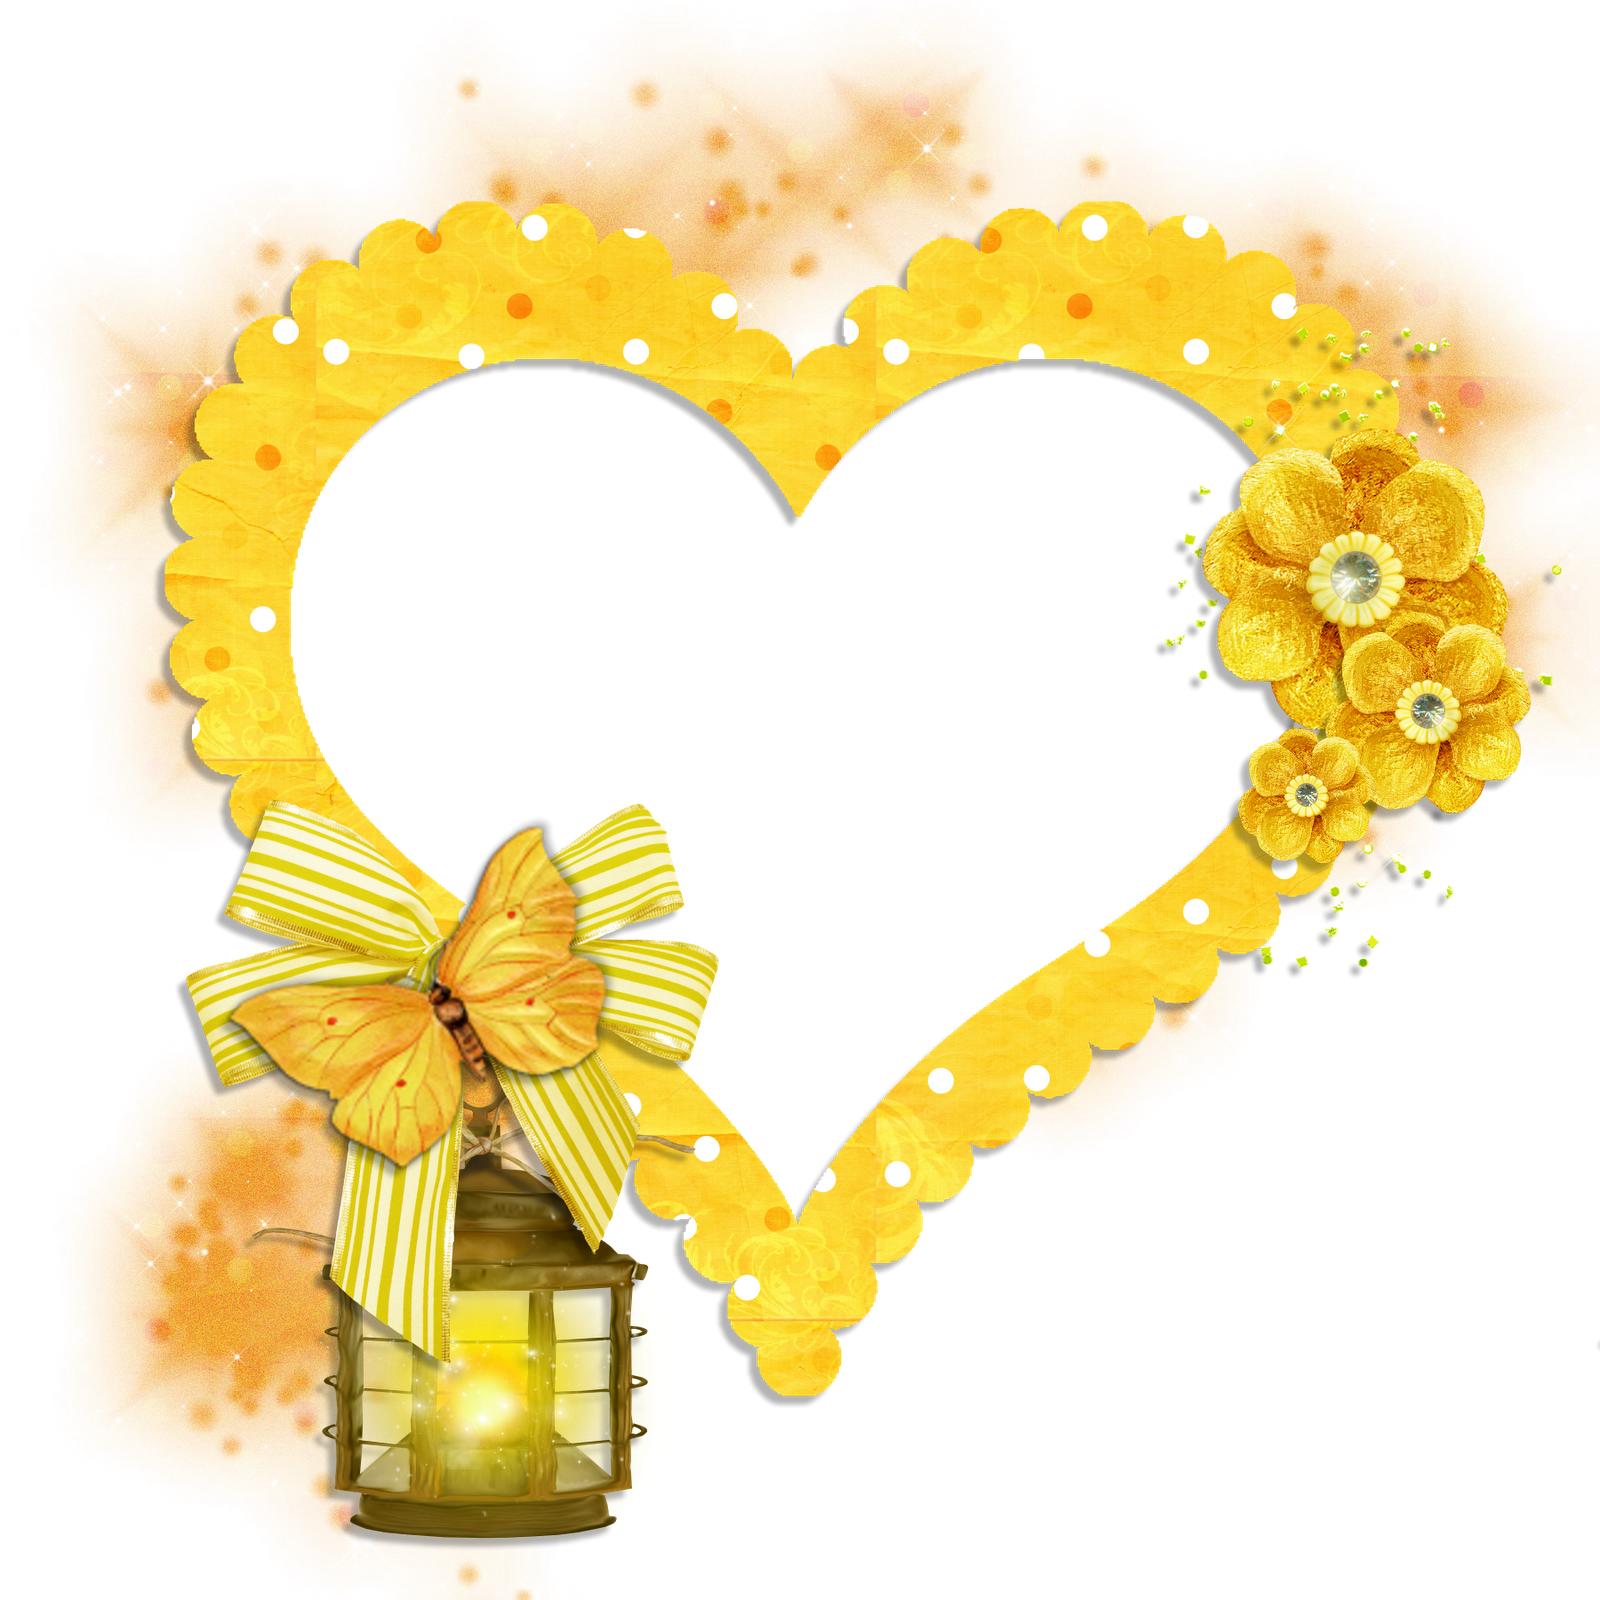 Light bulb clip art heart. Transparent frame yellow with